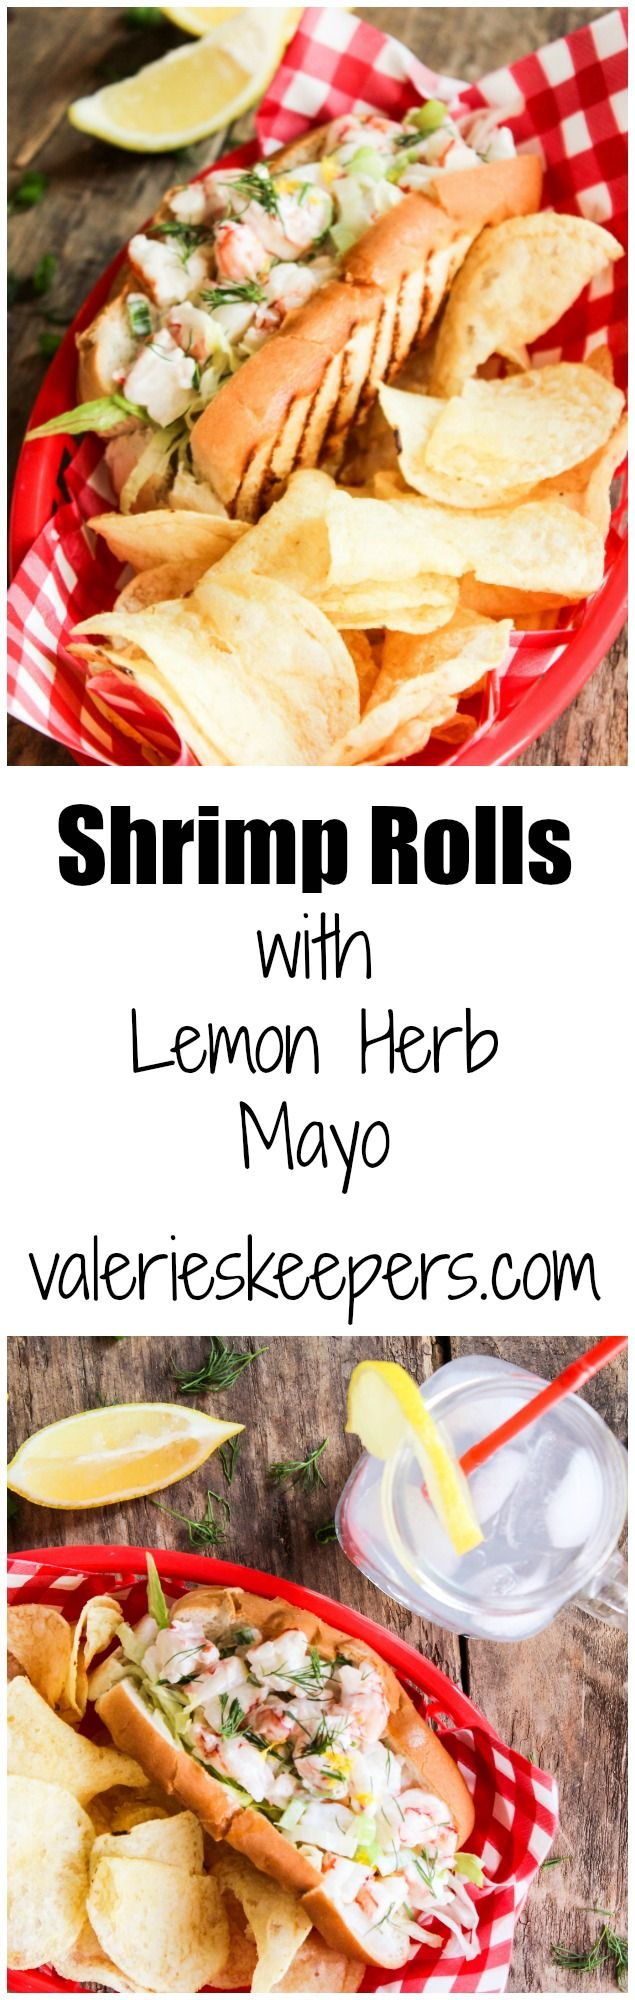 These Shrimp Rolls with Lemon Herb Mayo are incredibly quick & easy to make and just plain delicious...and a lot cheaper than lobster rolls!